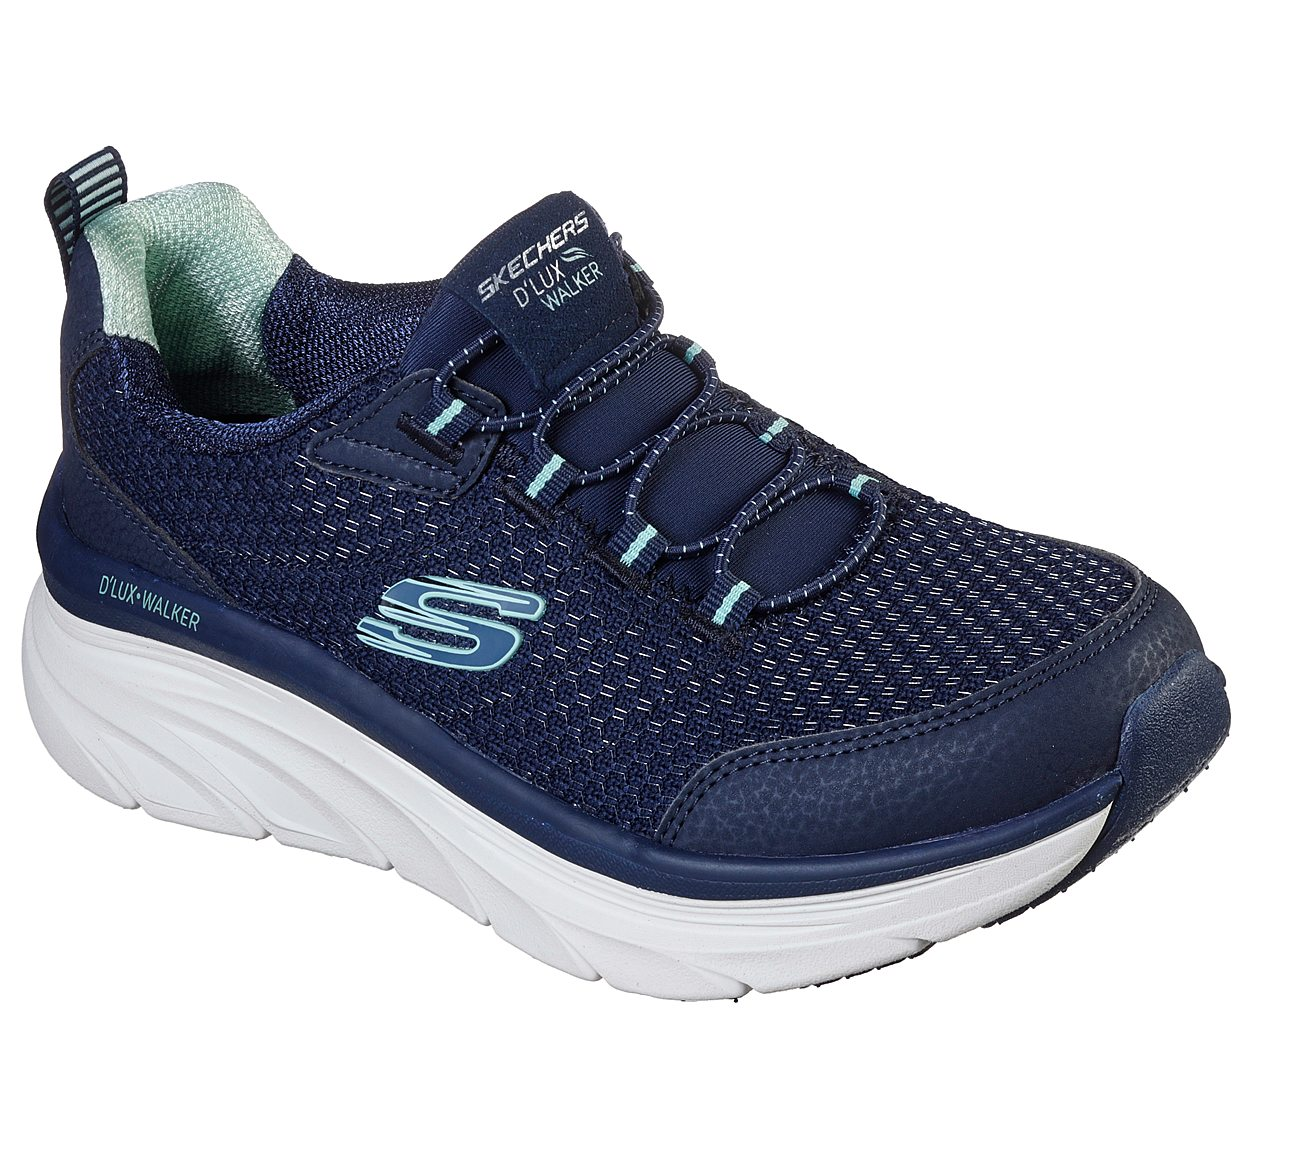 skechers relaxed fit womens shoes